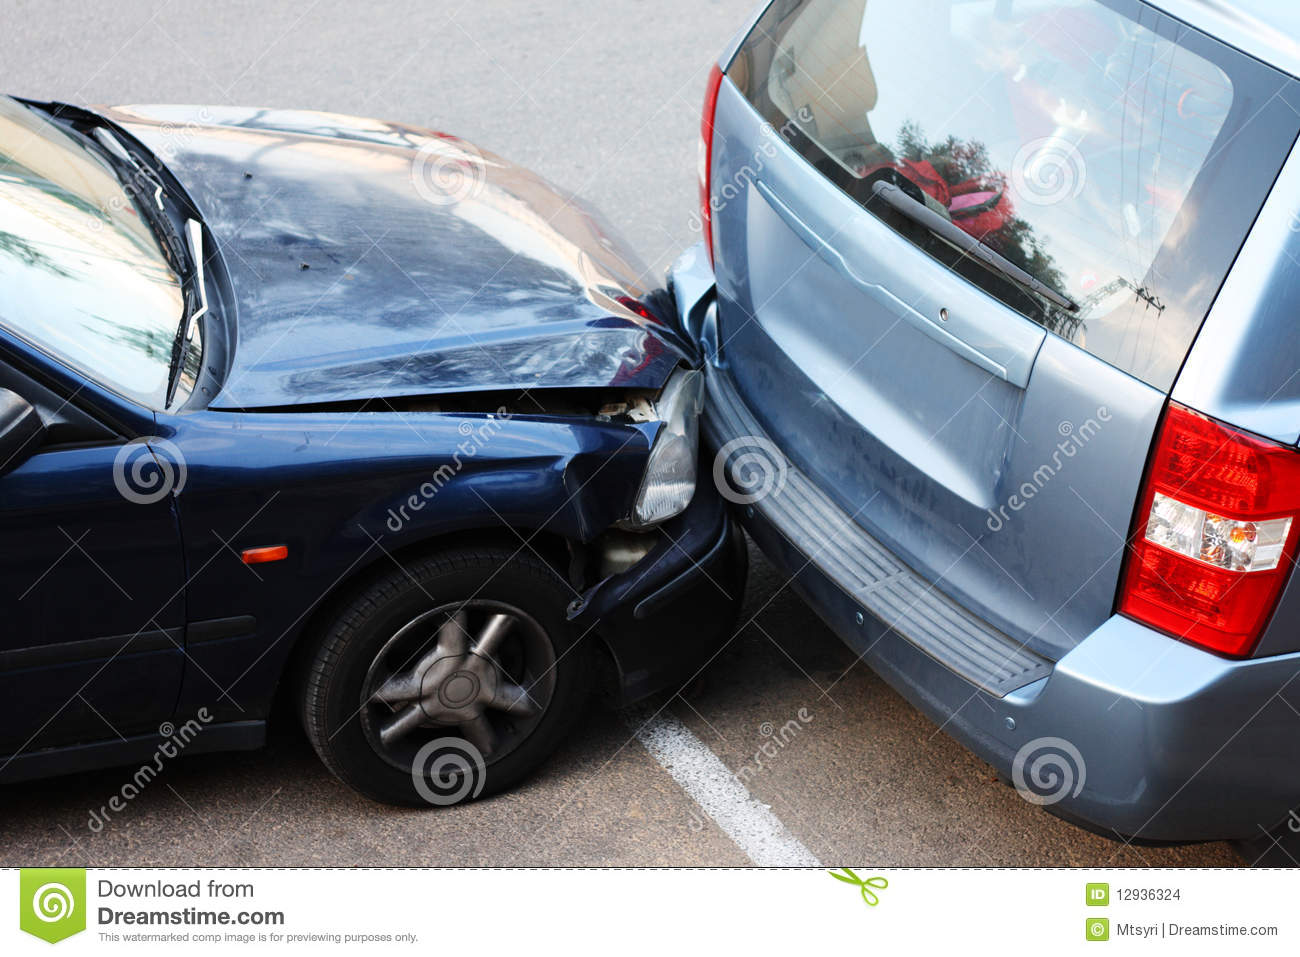 Car Accident While Marijuana In System